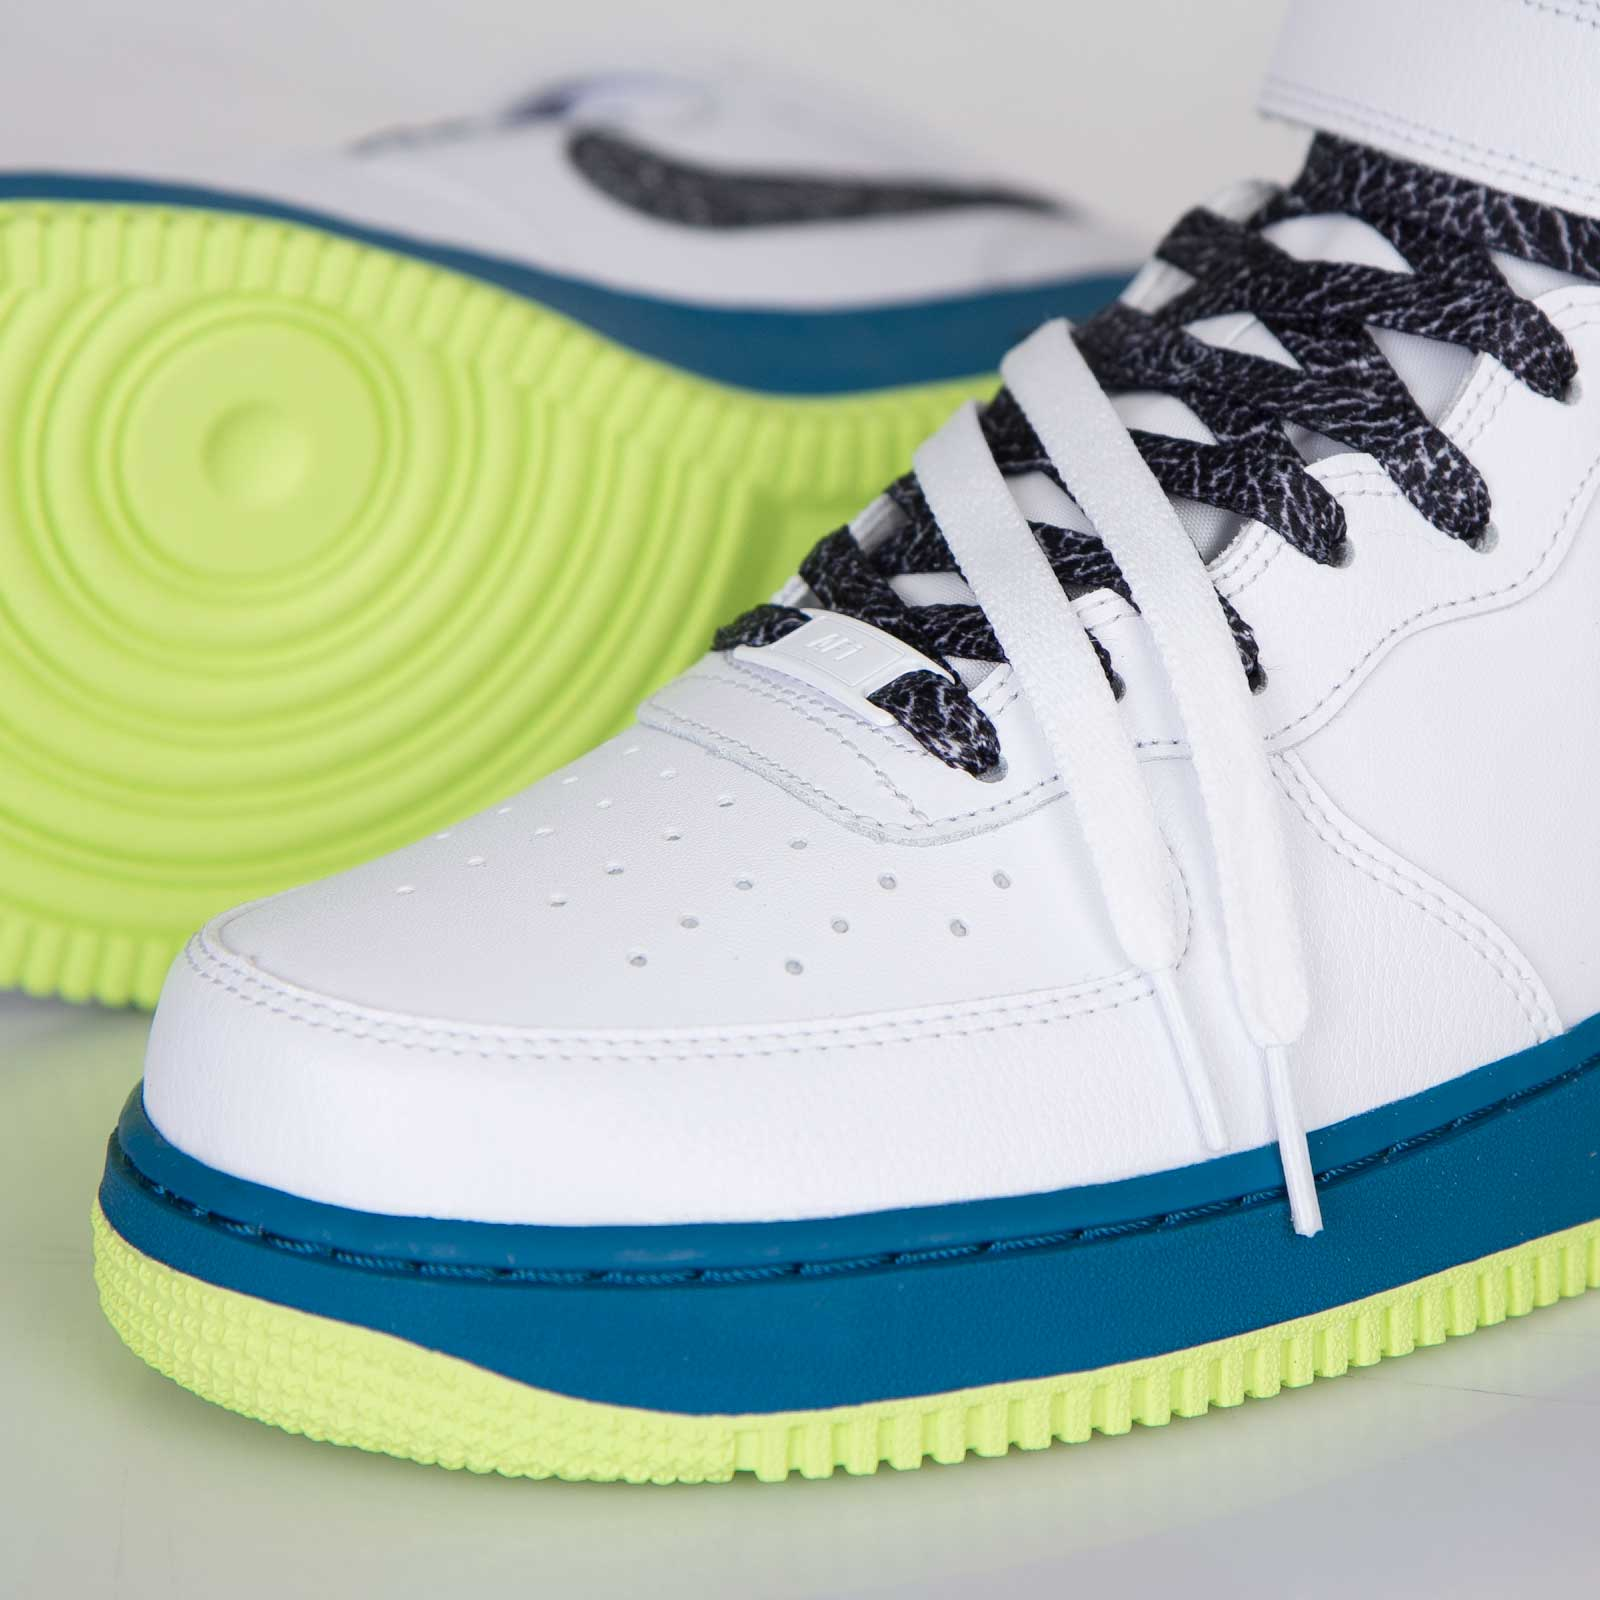 Nike Air Force 1 MID 07 Schuhe white black green abyss volt